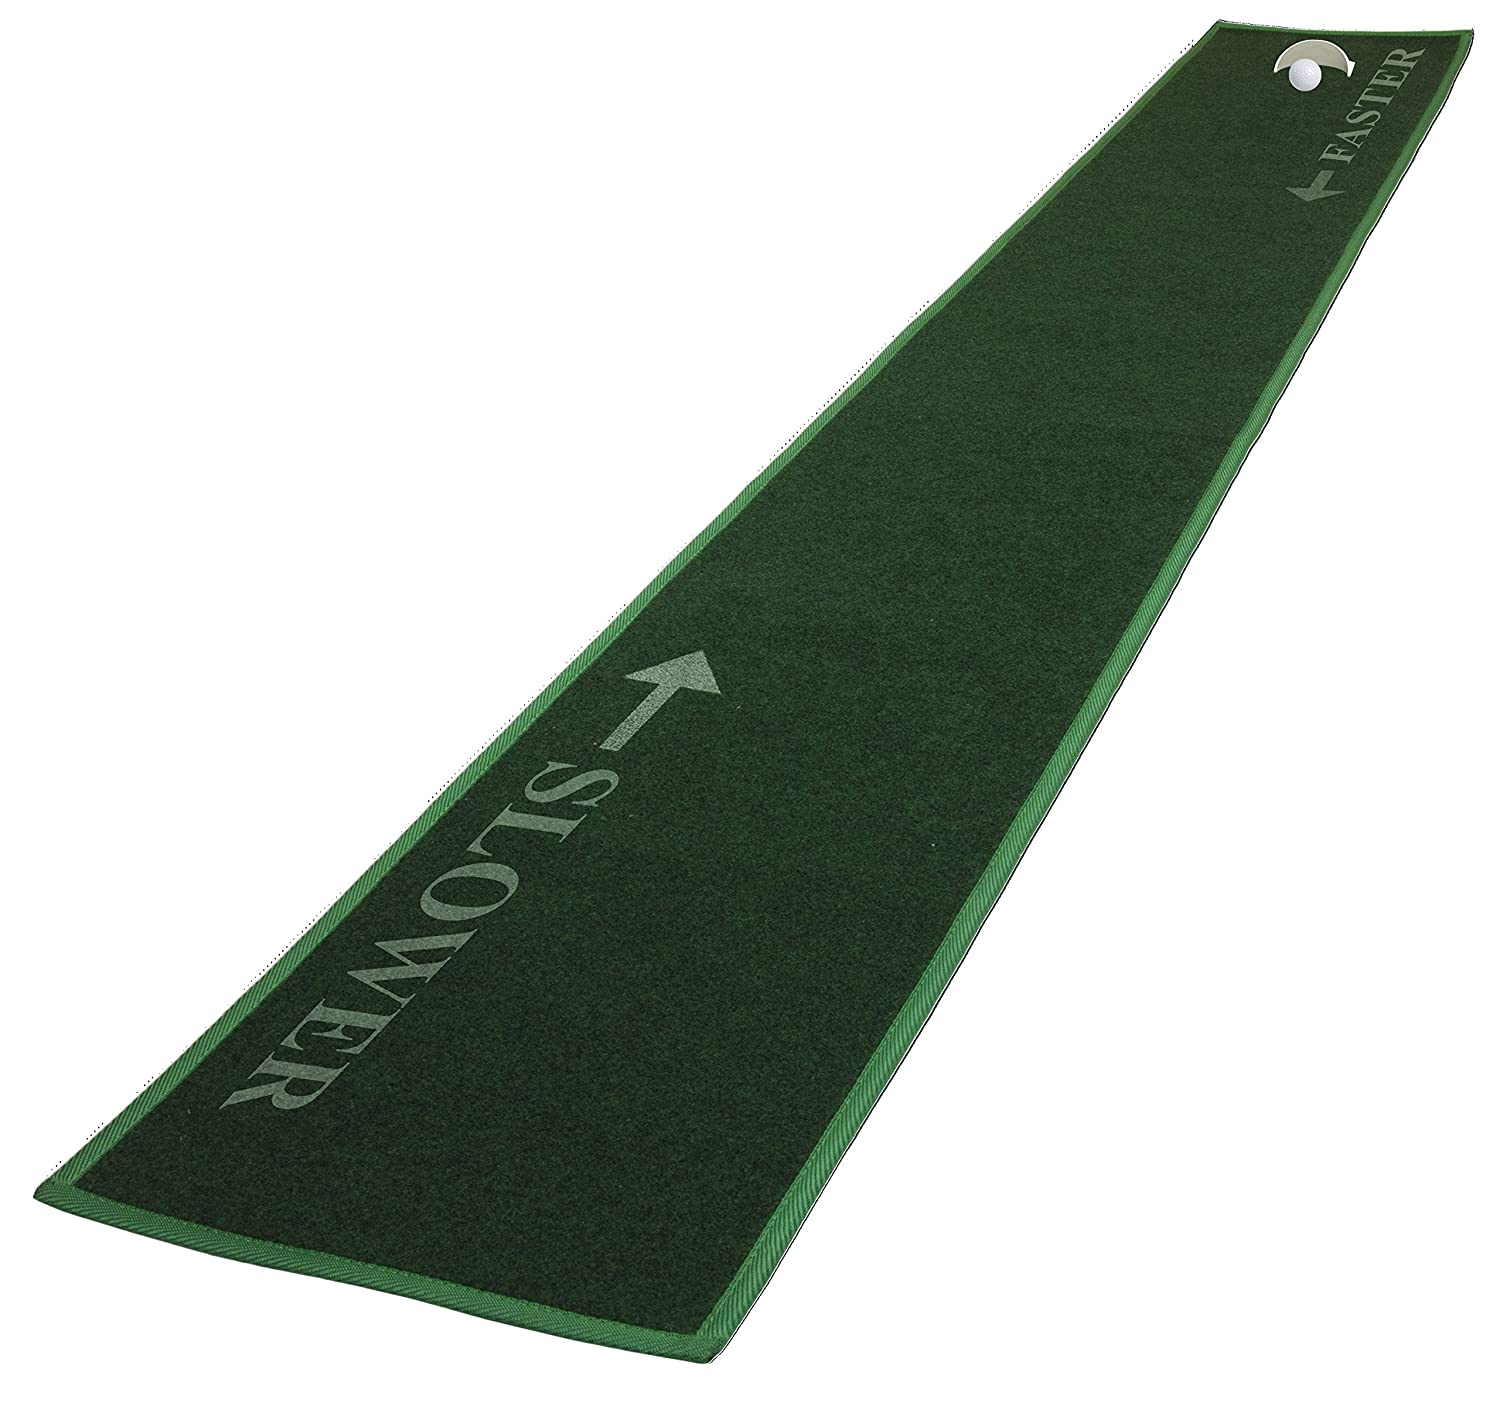 JEF World of Golf 2.4m Long by 36cm Wide Putting Mat   B06WGQY6H7